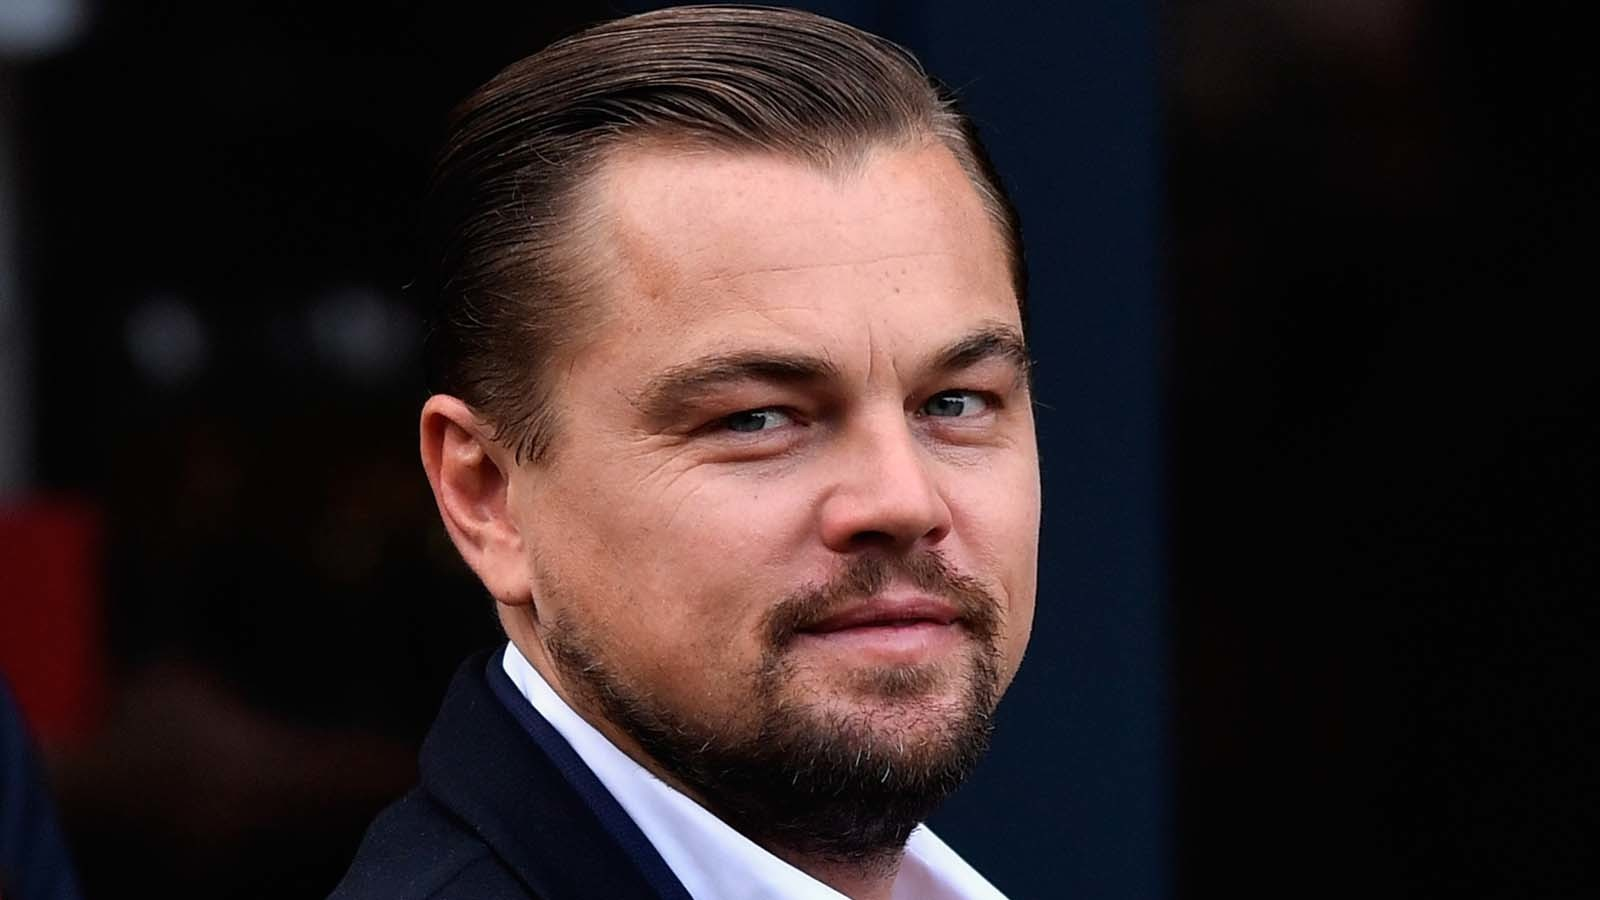 Malaysia money laundering probe: Leonardo DiCaprio returns Brando's Oscar, Picasso painting